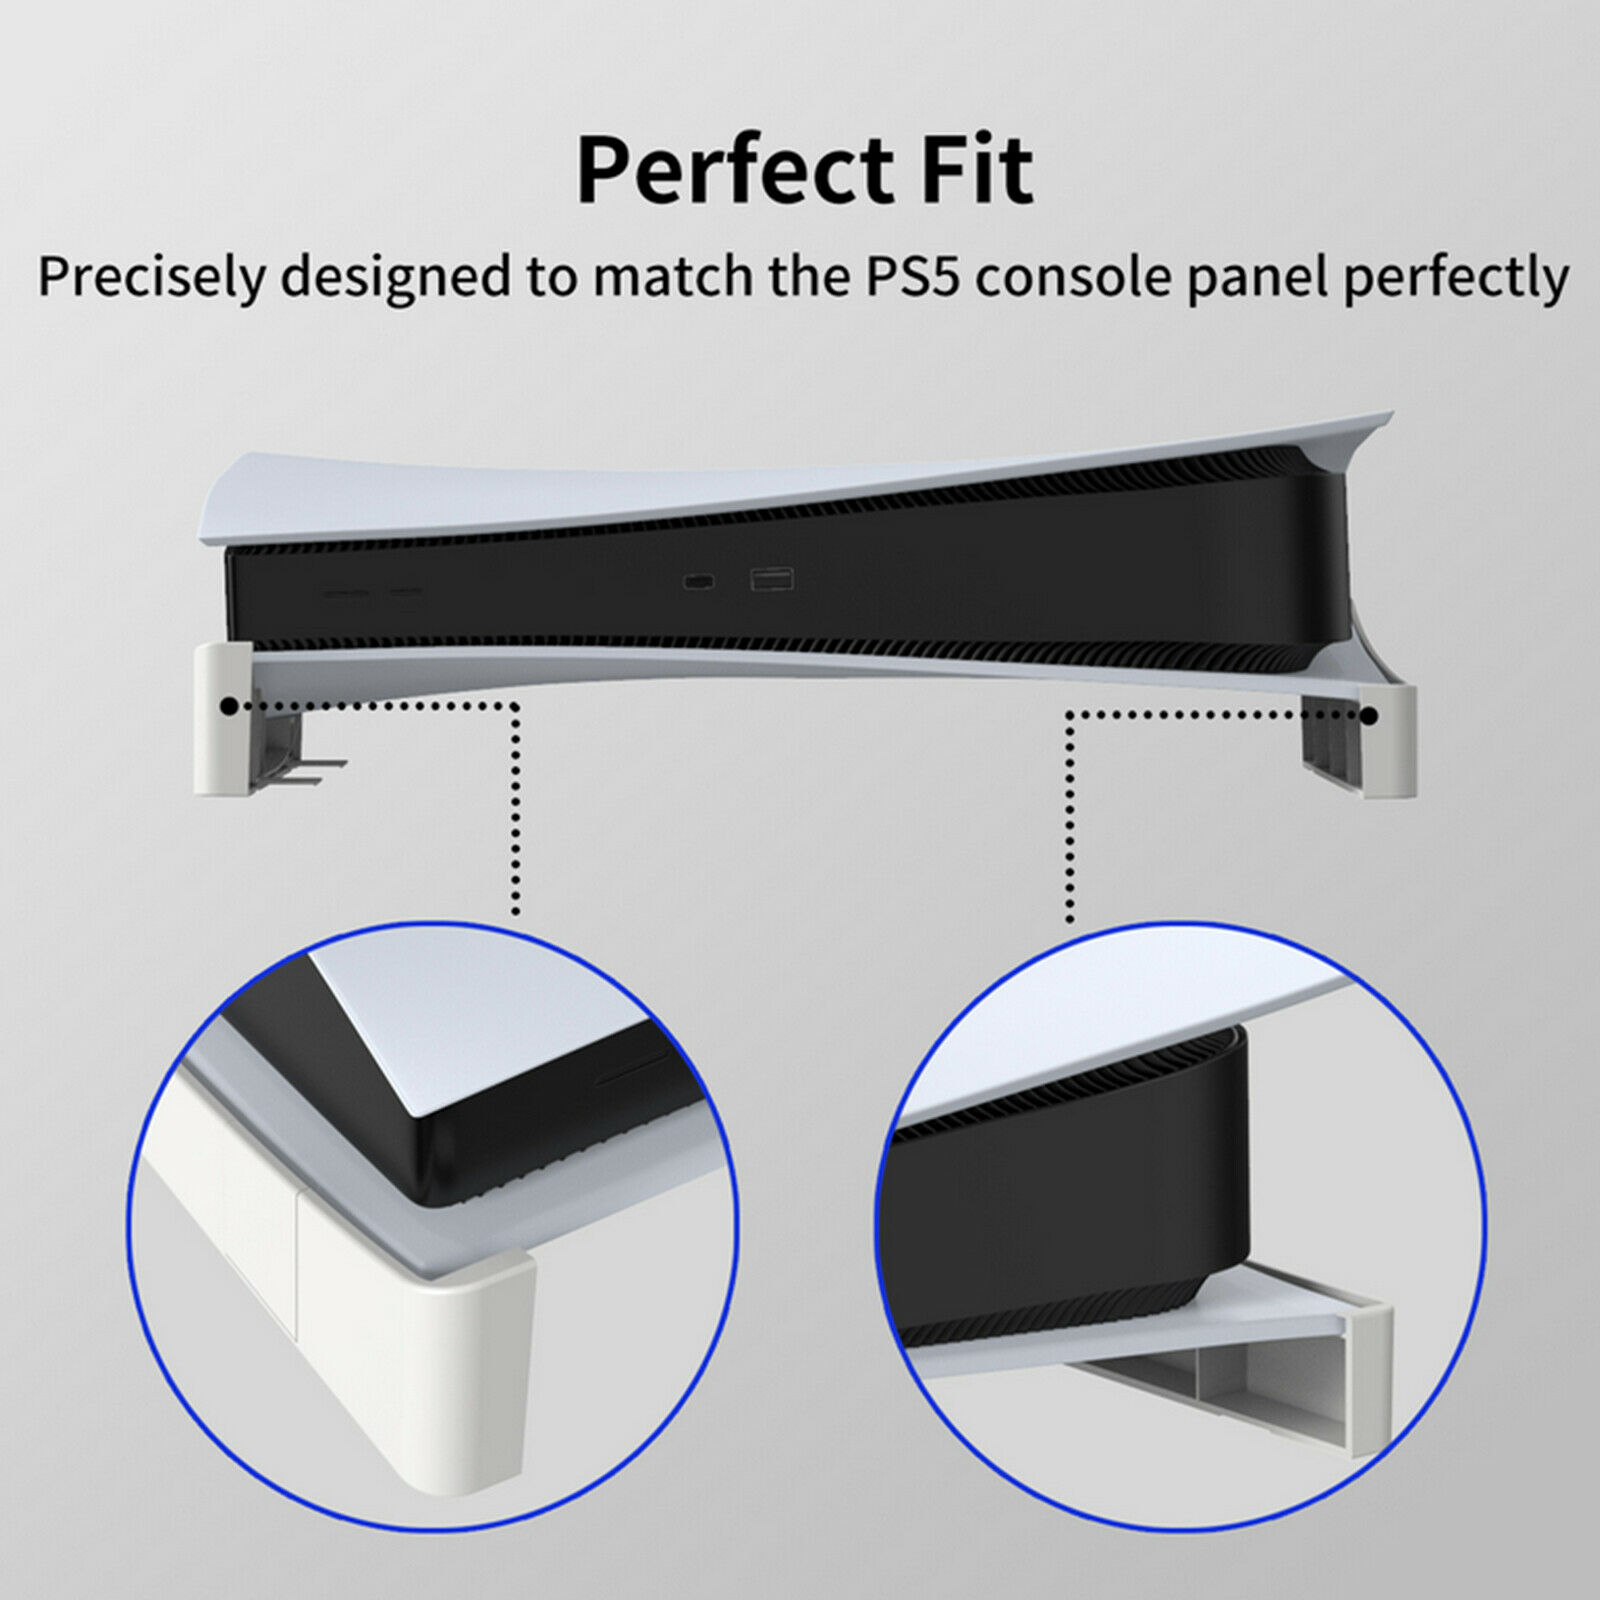 Host Horizontal Bracket Desktop Cooling Stand For Sony Playstation 5 PS5 Console